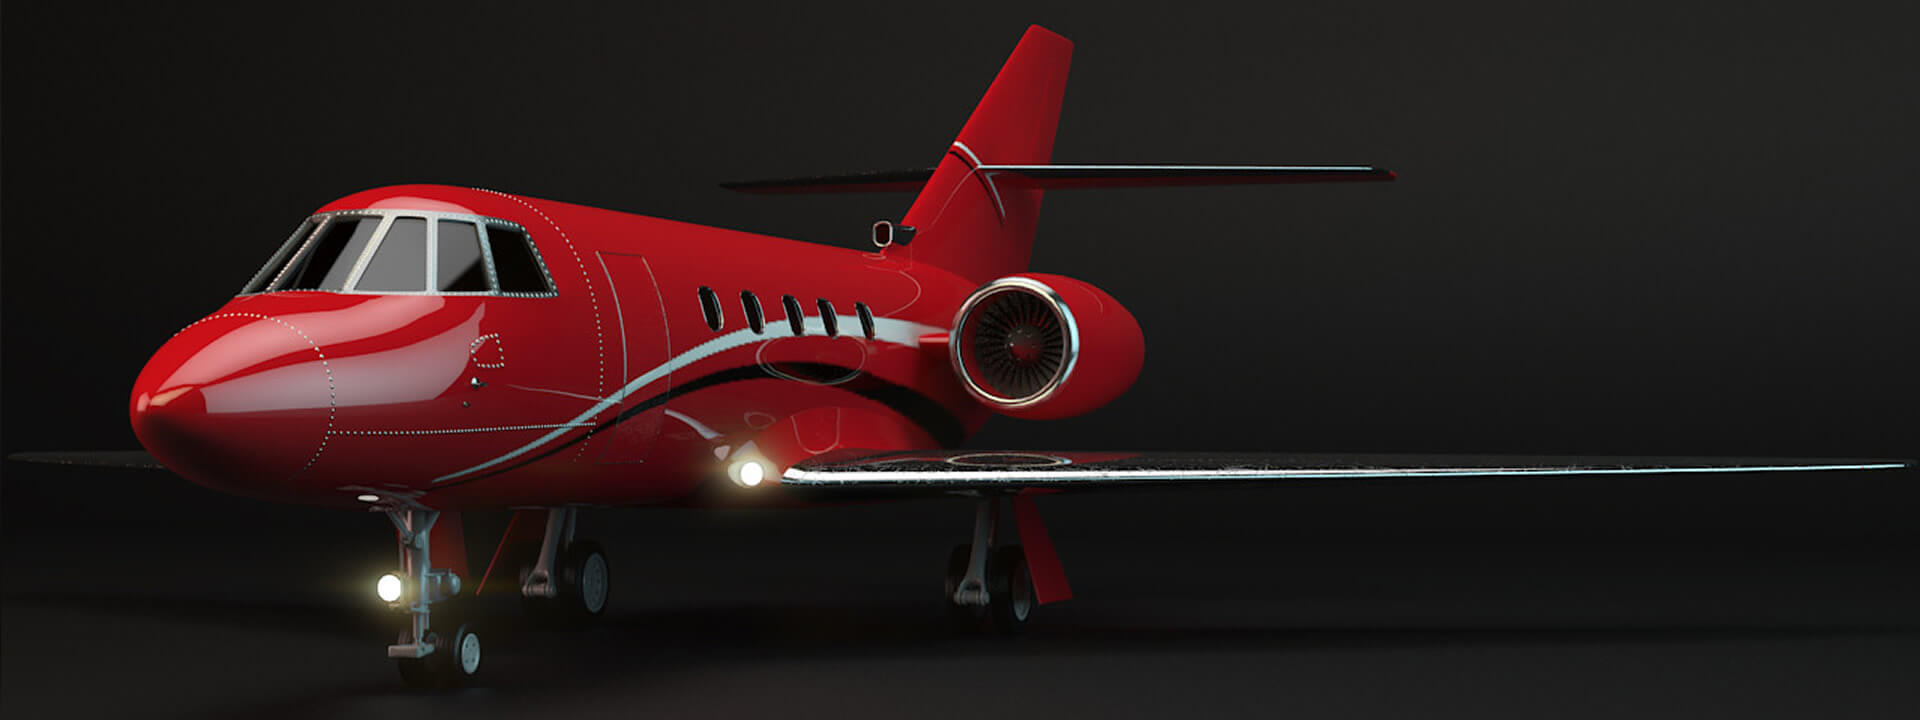 Side profile of a red private jet